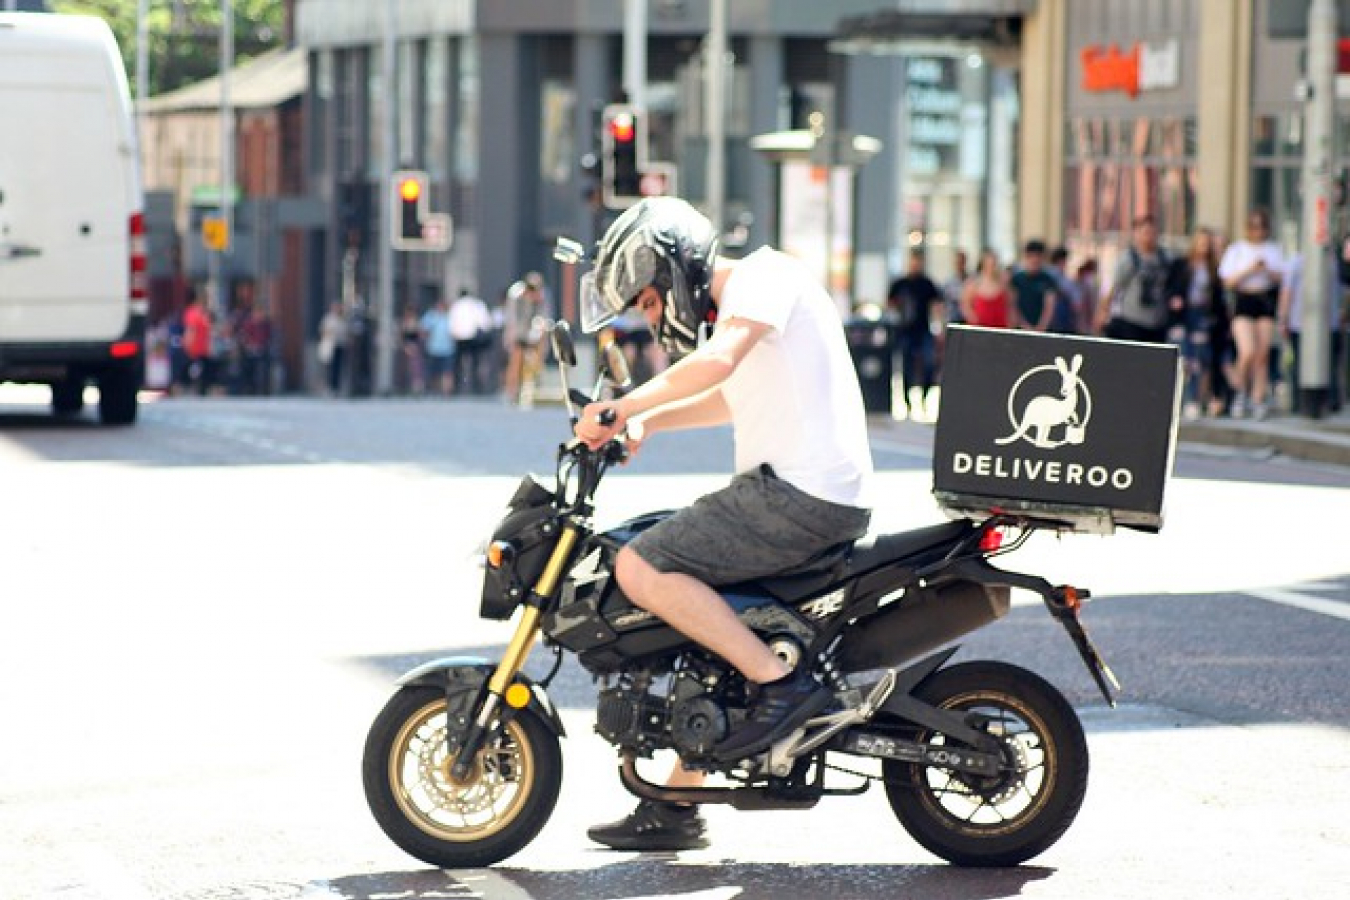 Deliveroo one of the biggest UK Tech Companies Biker - Deliveroo Delivery Drive